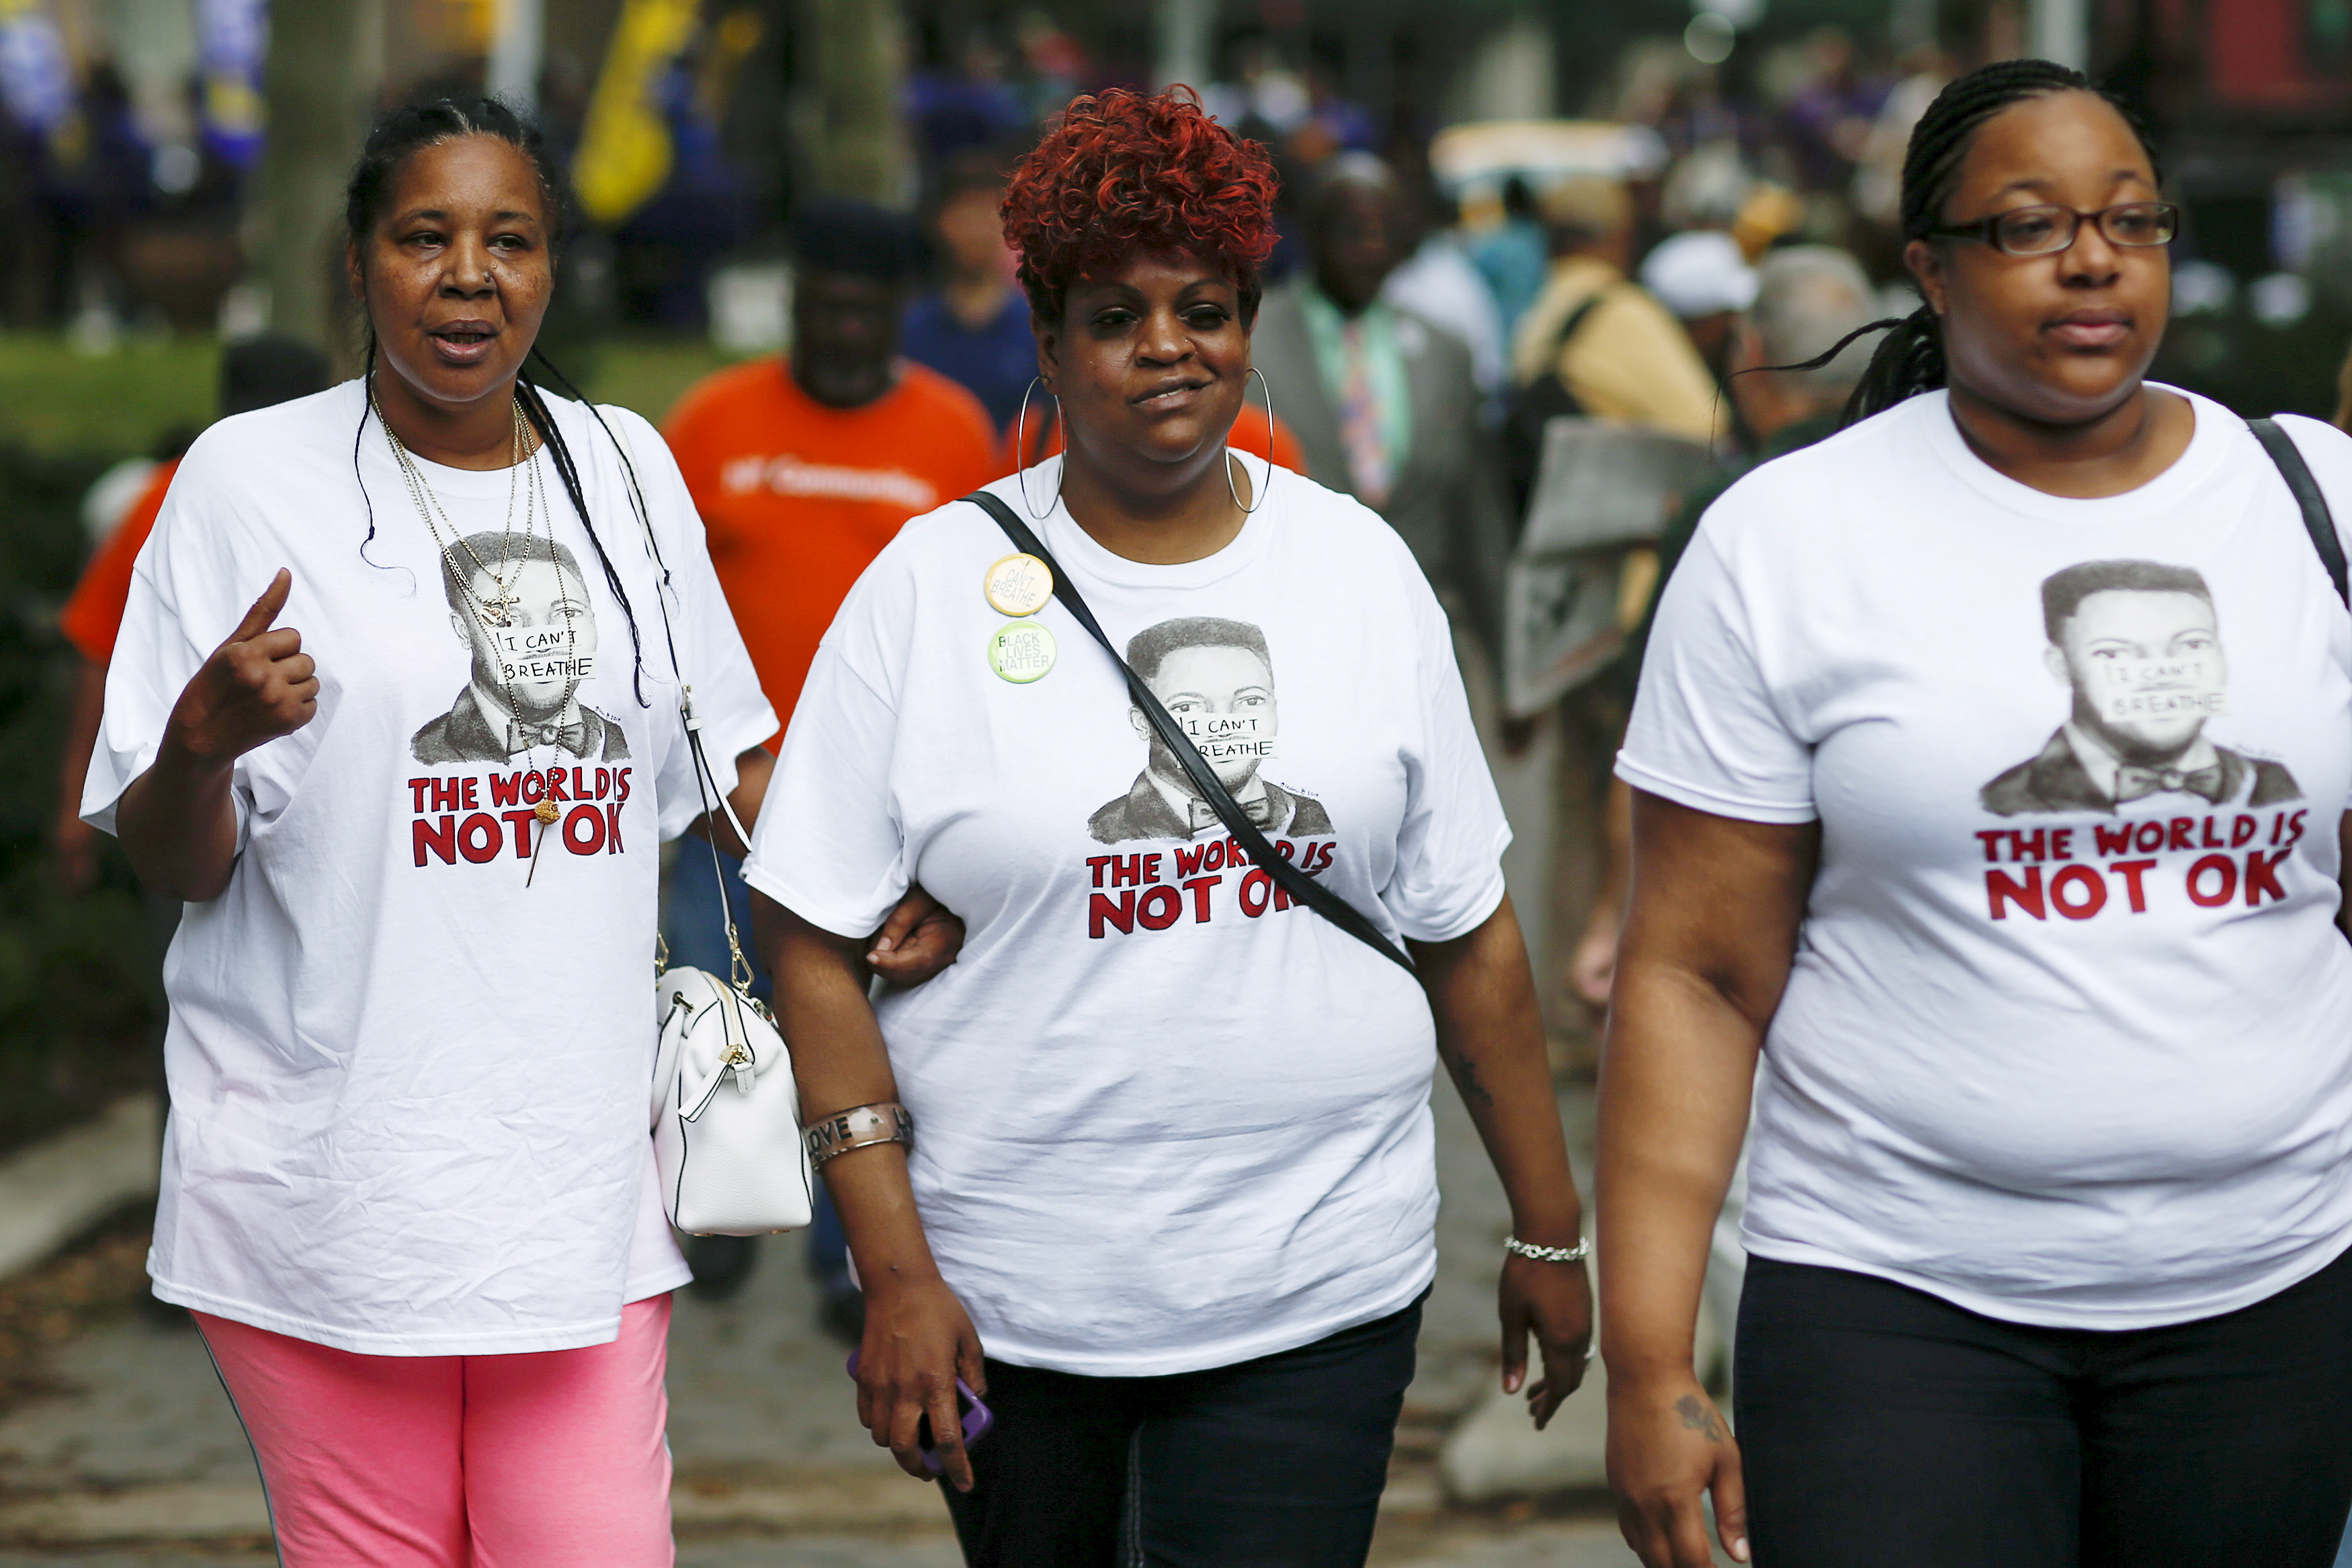 Esaw Garner, (L) widow of Eric Garner, and Emerald Snipes Garner (R), daughter of Eric Garner, arrive to attend a rally near a Brooklyn court in New York, July 18, 2015. Family and supporters marked the anniversary of the police killing of Eric Garner with rallies and vigils demanding police reforms and justice in the controversial case. Photo by Eduardo Munoz/Reuters